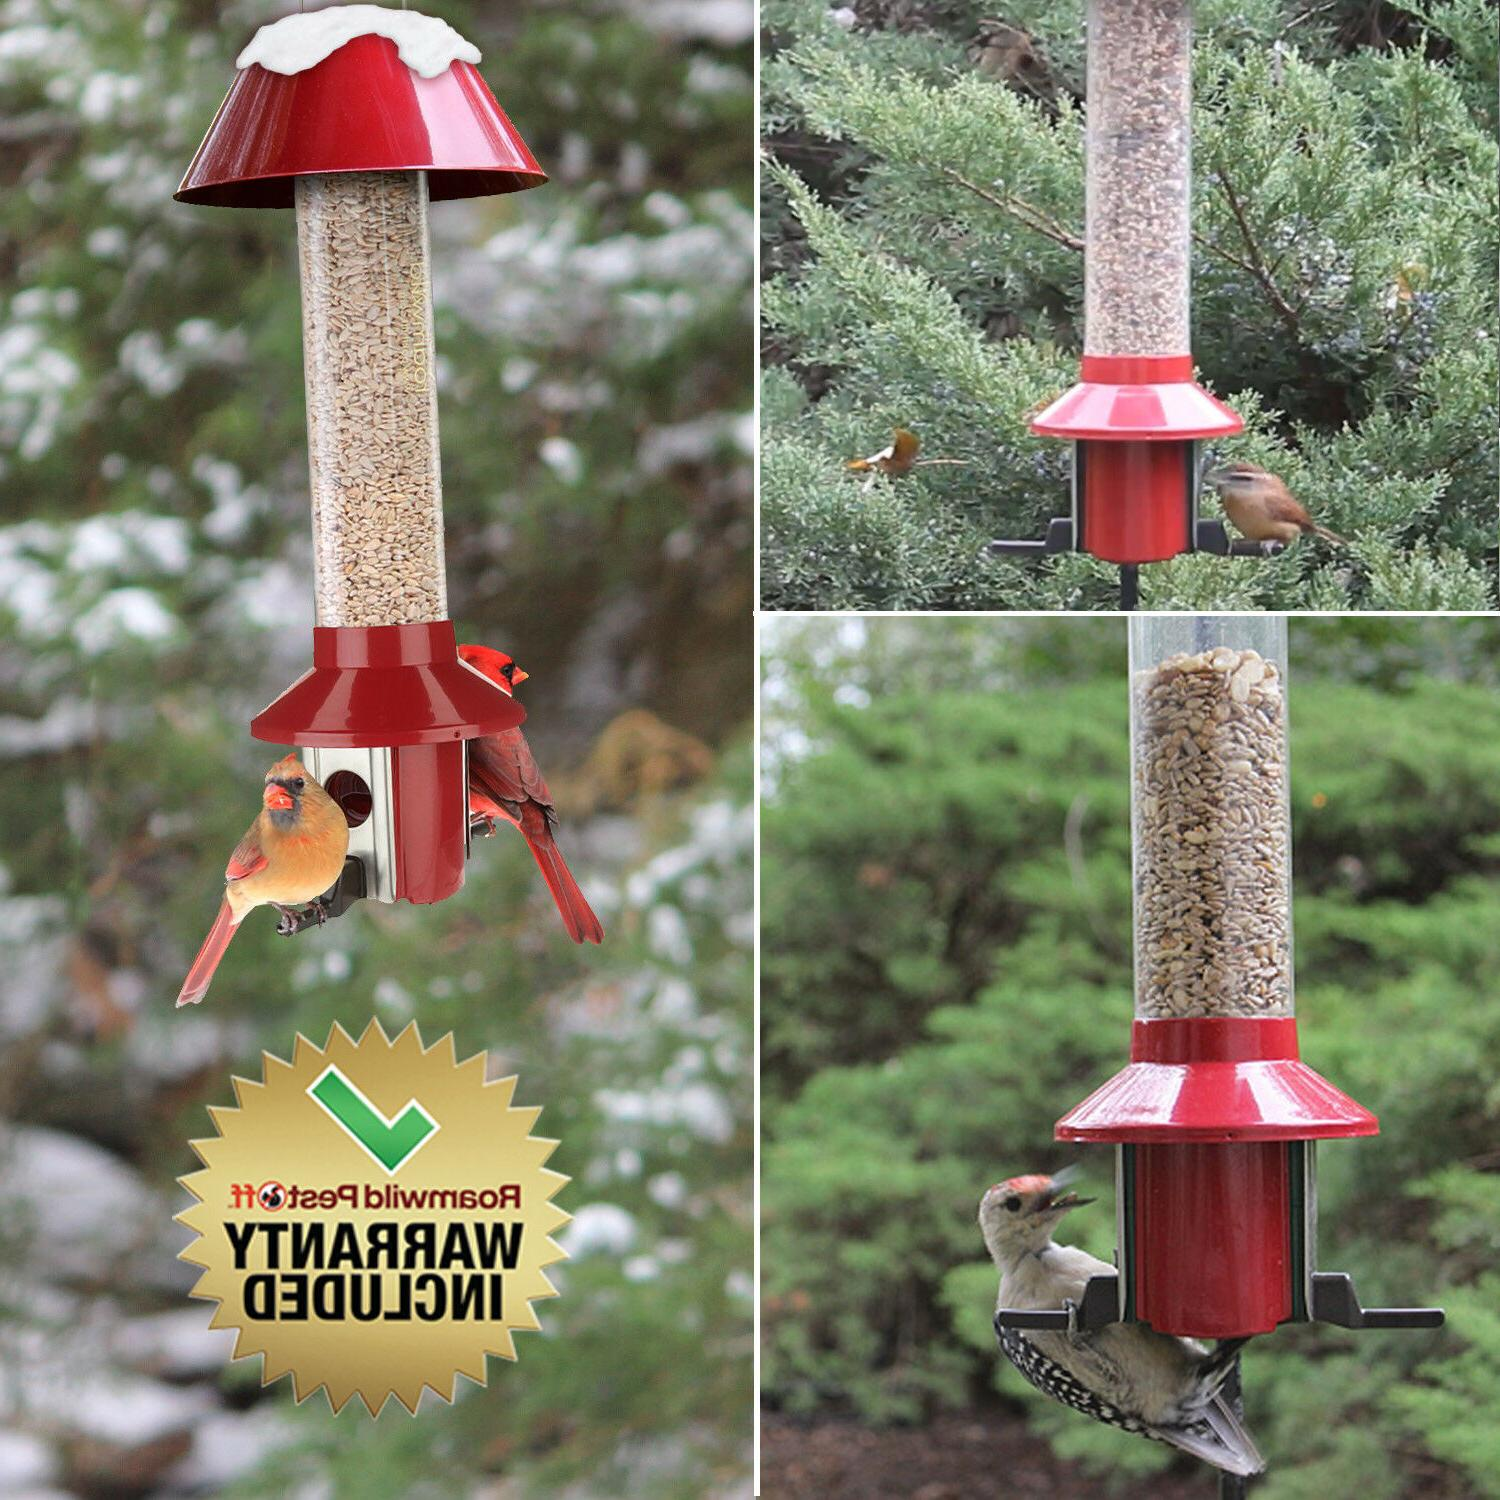 Roamwild Red Squirrel Proof Bird Feeder Mixed Seed